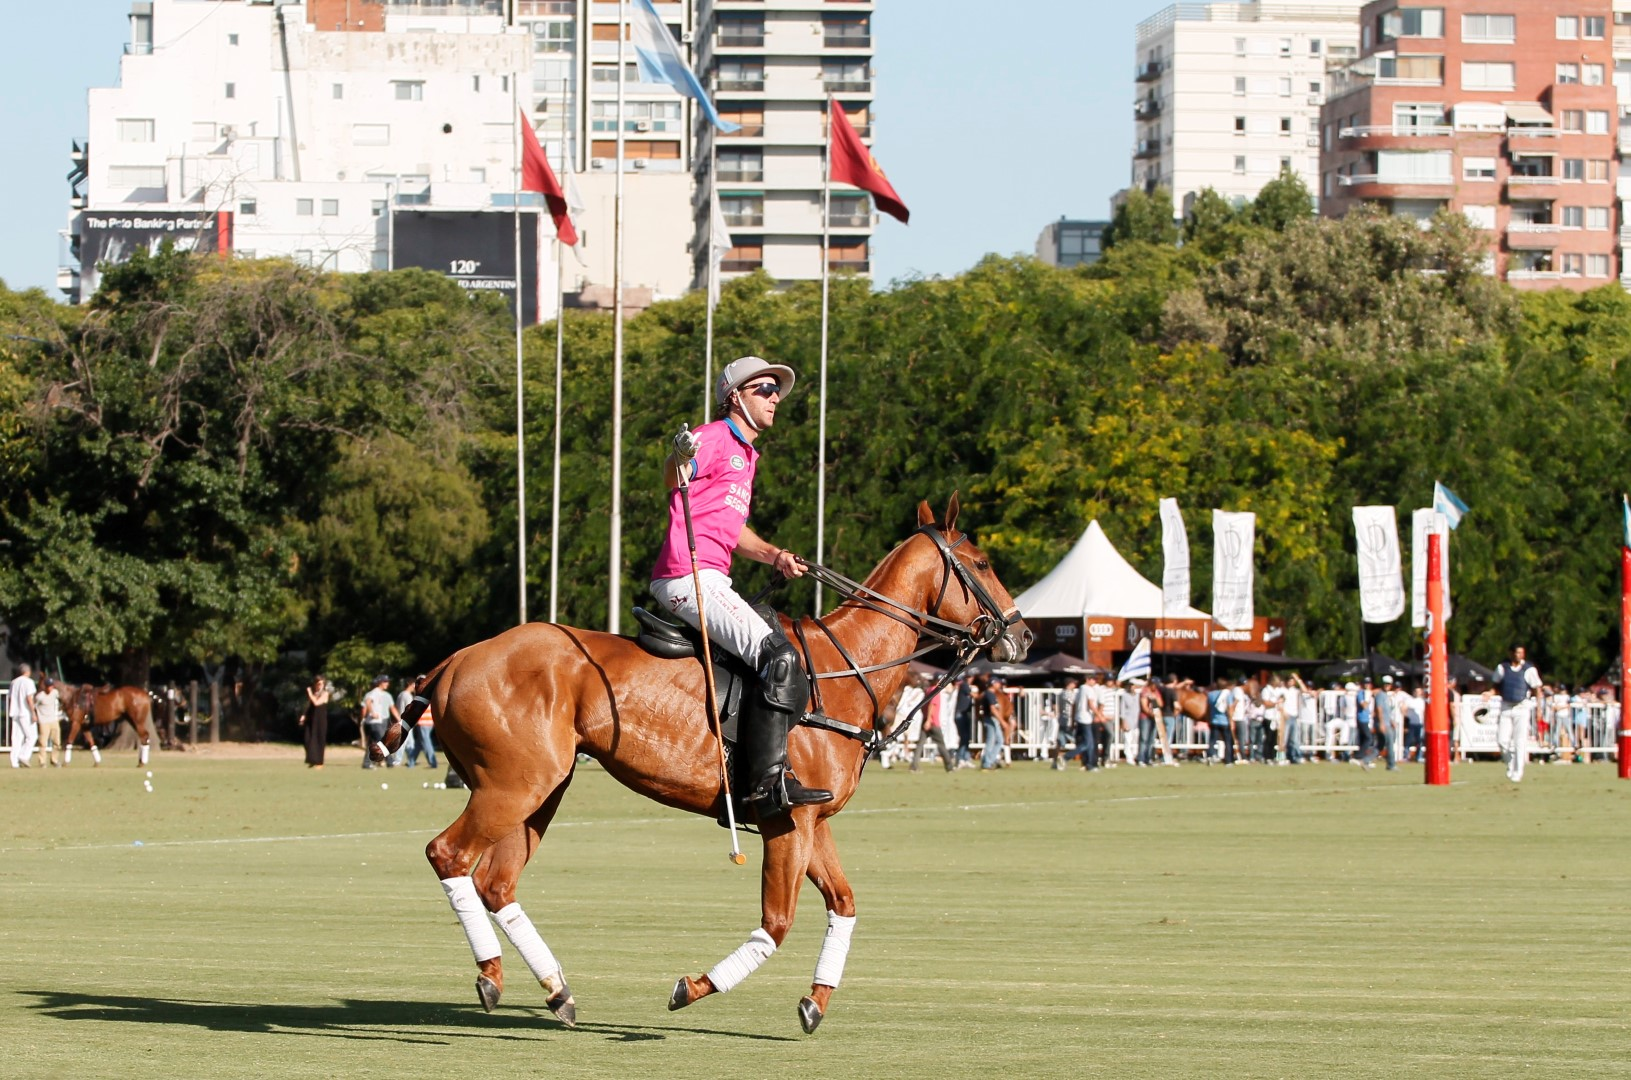 15 Polito Pieres congratulating his fans Incredible